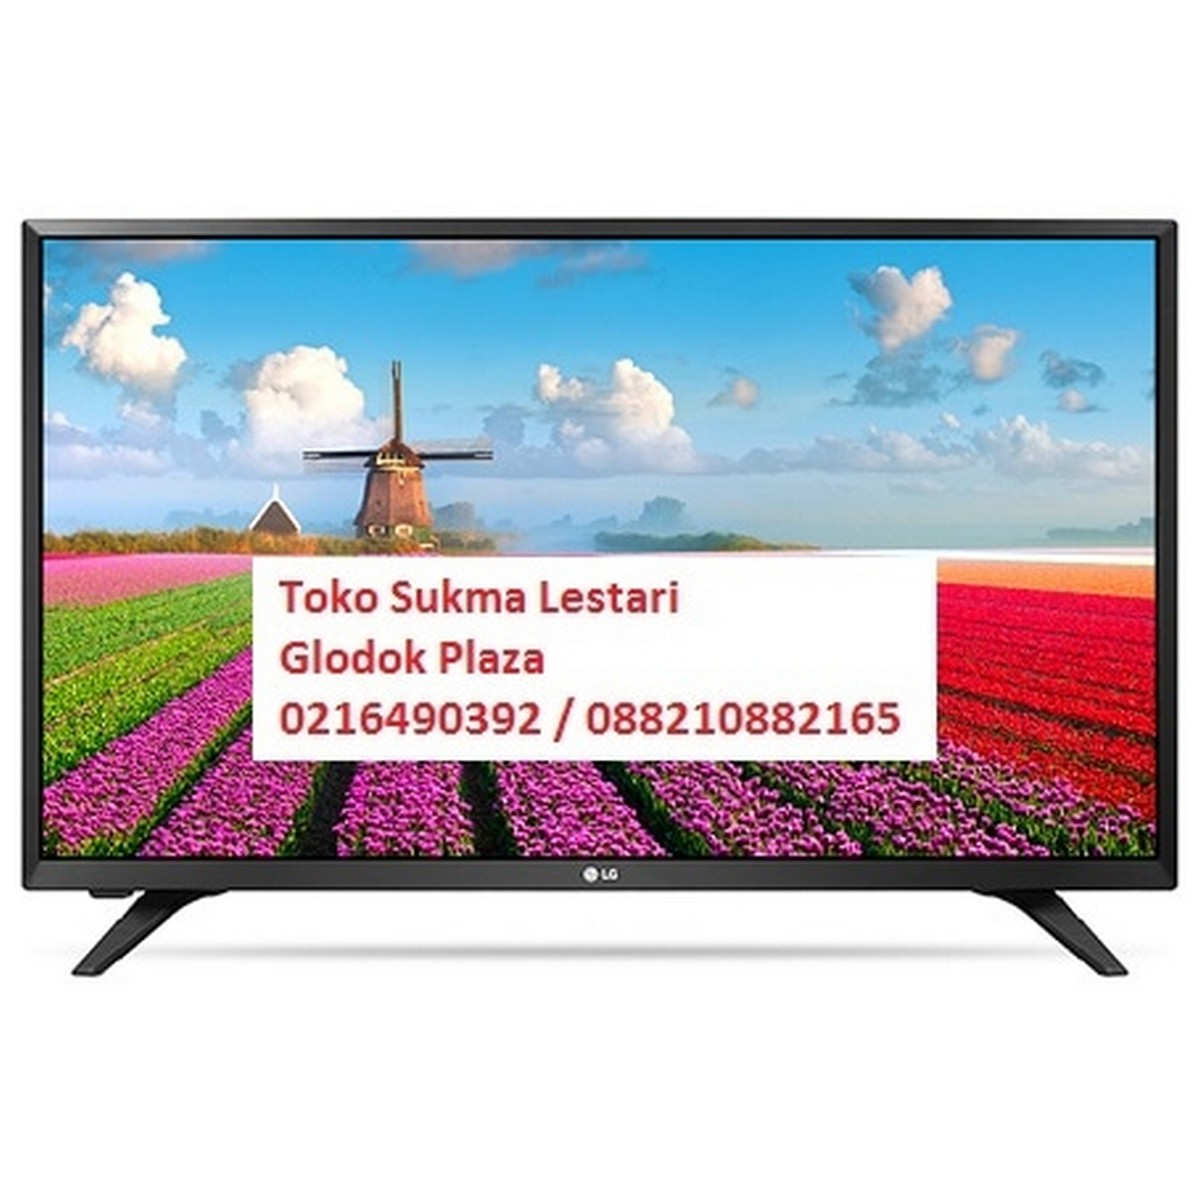 Led Tv Lg 32 Type 32Lj500 Usb Movie & Siaran Digital HargaPrommo03